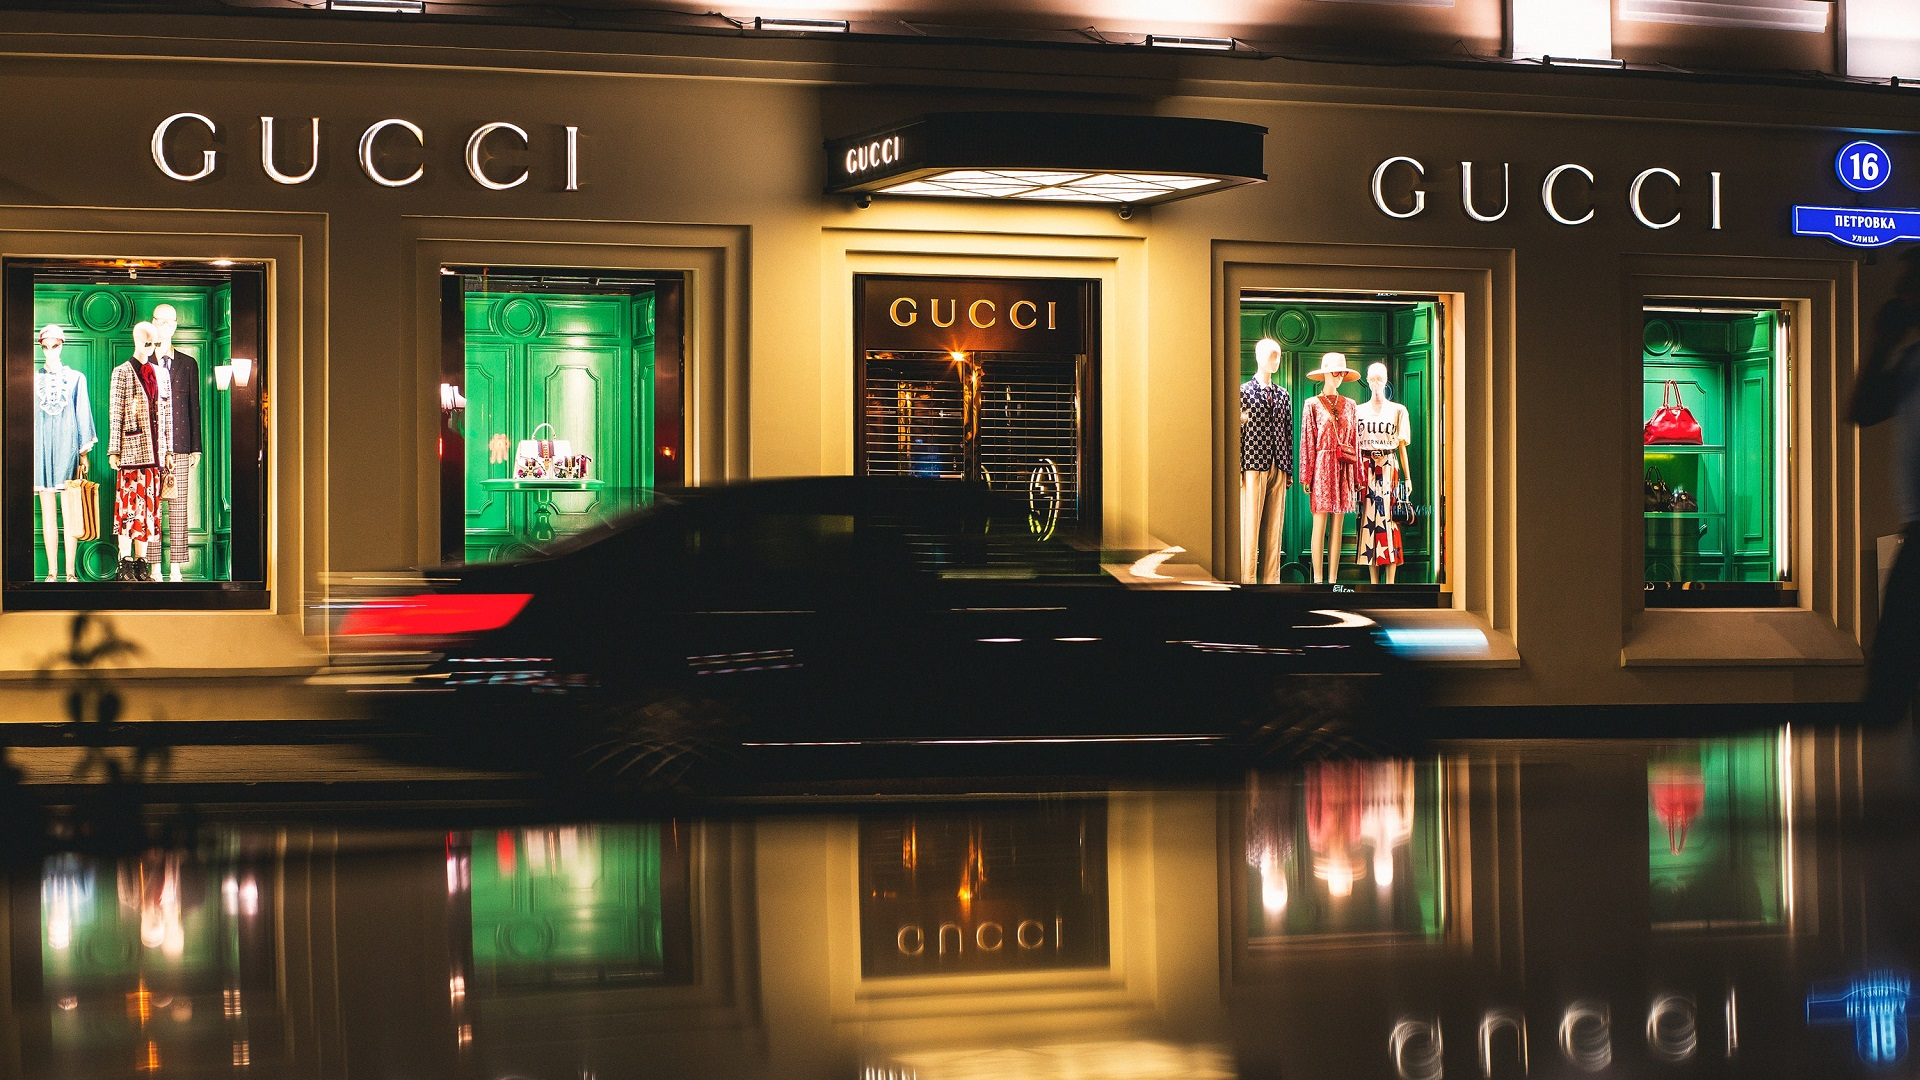 'House Of Gucci': Uncover The History Of The Luxury Fashion Brand Before The Big Movie